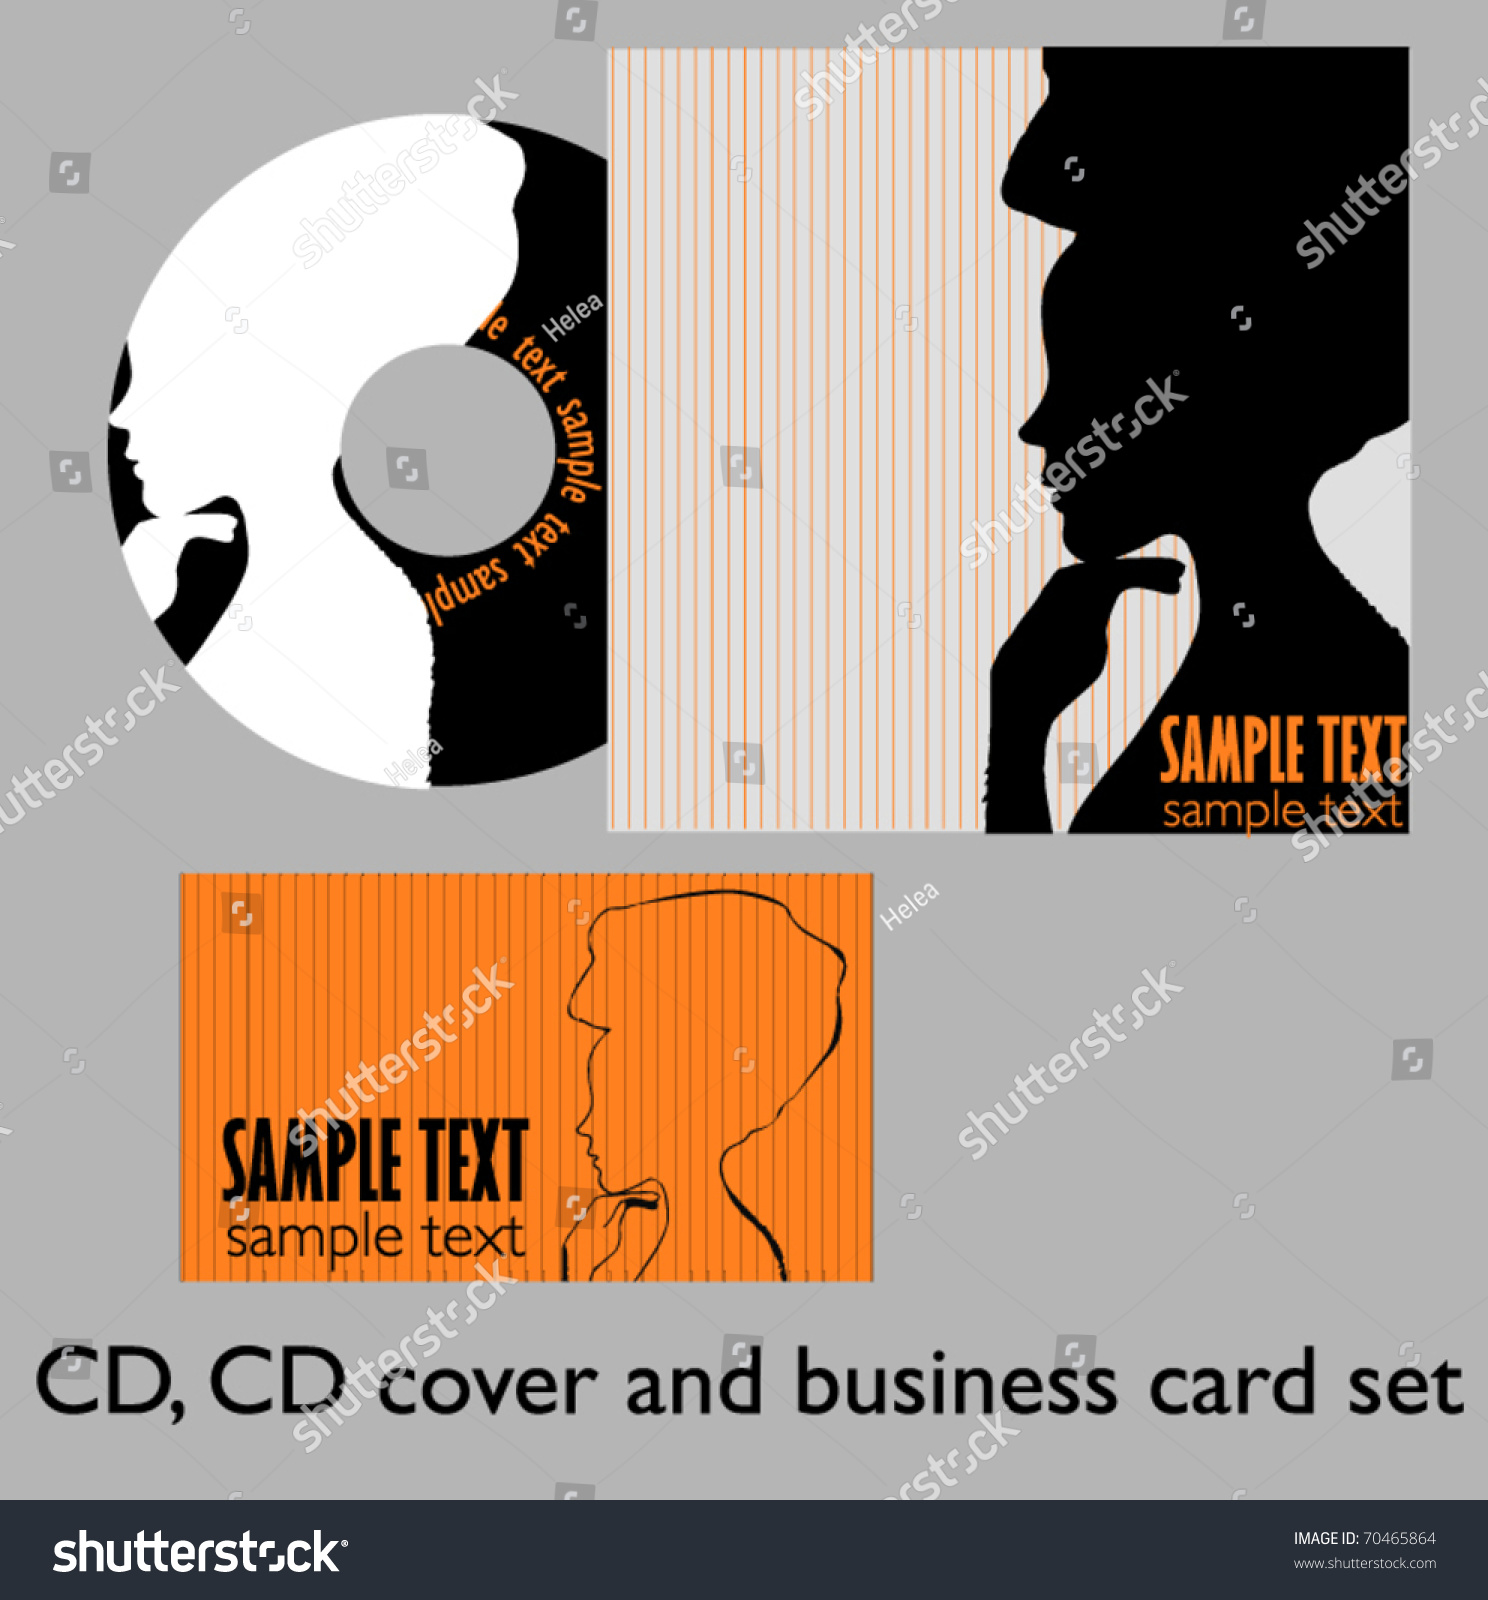 Illustrated Book Cover Vector : Vector illustrated cd cover design  shutterstock